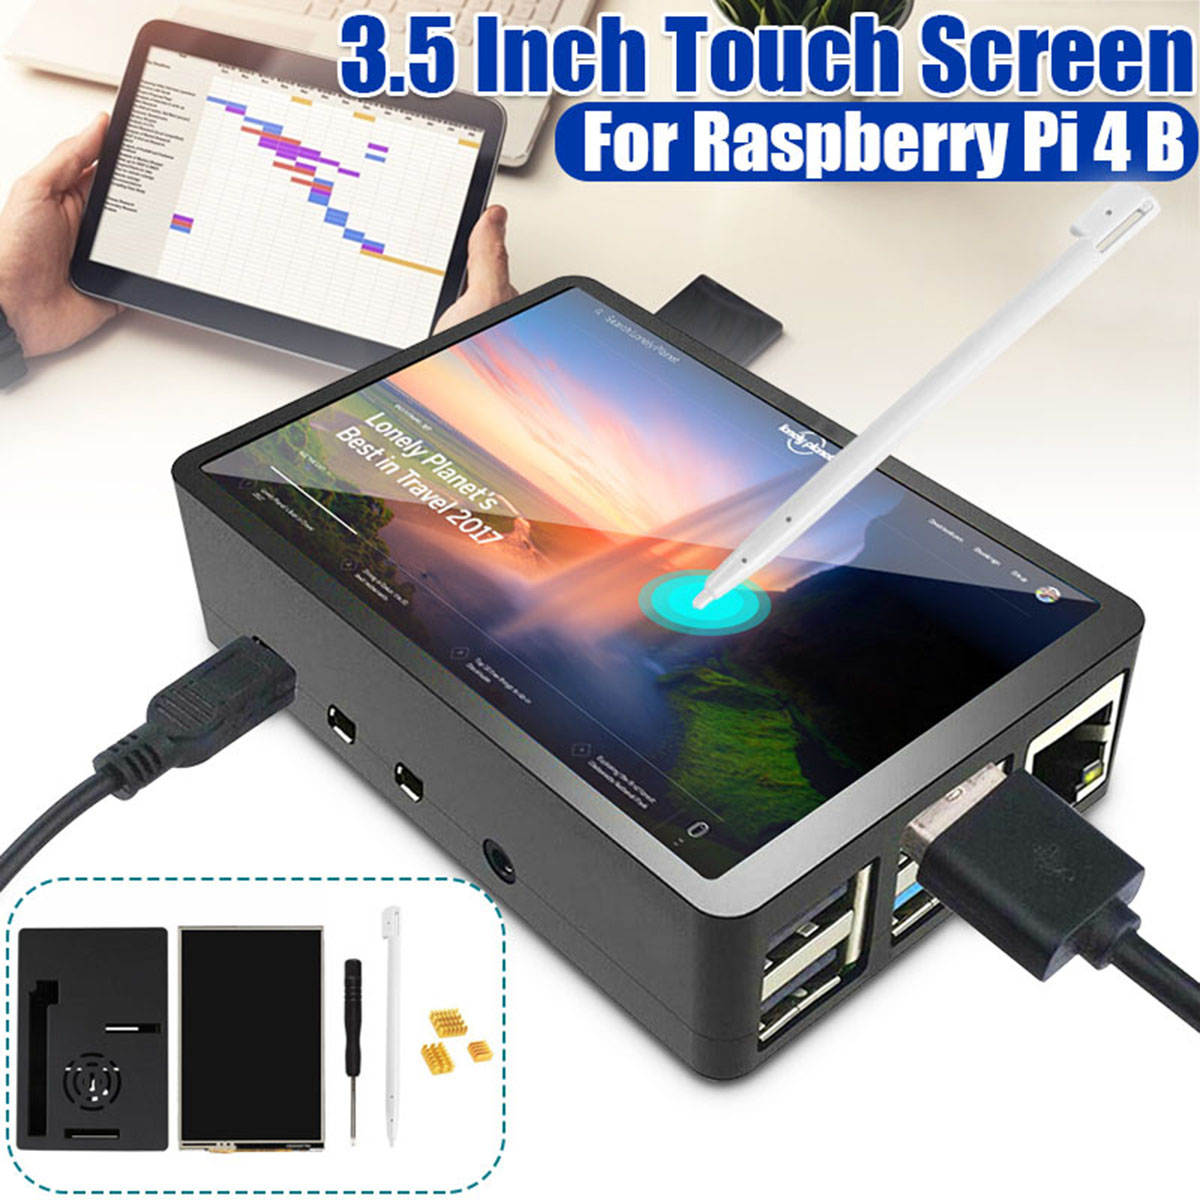 Lcd-Touchscreen Screwdriver Lcd-Display Abs-Case Hdmi-Input-Monitor Raspberry Pi TFT